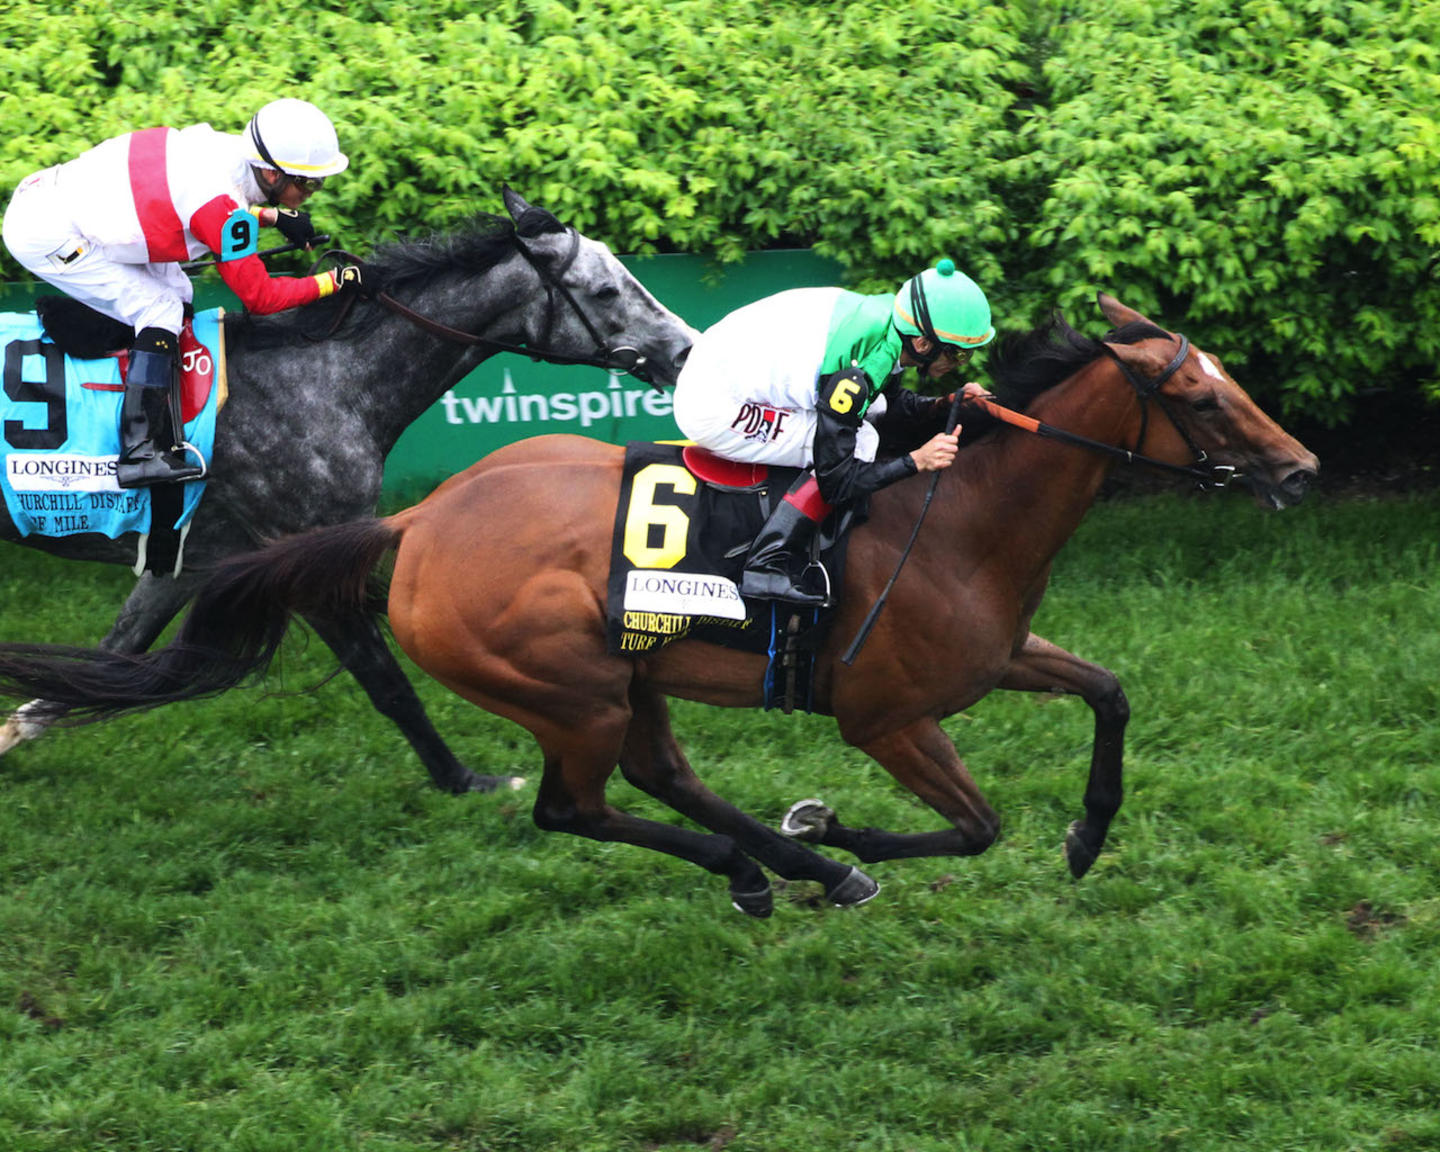 PROCTOR'S LEDGE - The Longines Churchill Distaff Turf Mile G2 - 33rd Running - 05-05-18 - R07 - CD - Aerial Finish 02